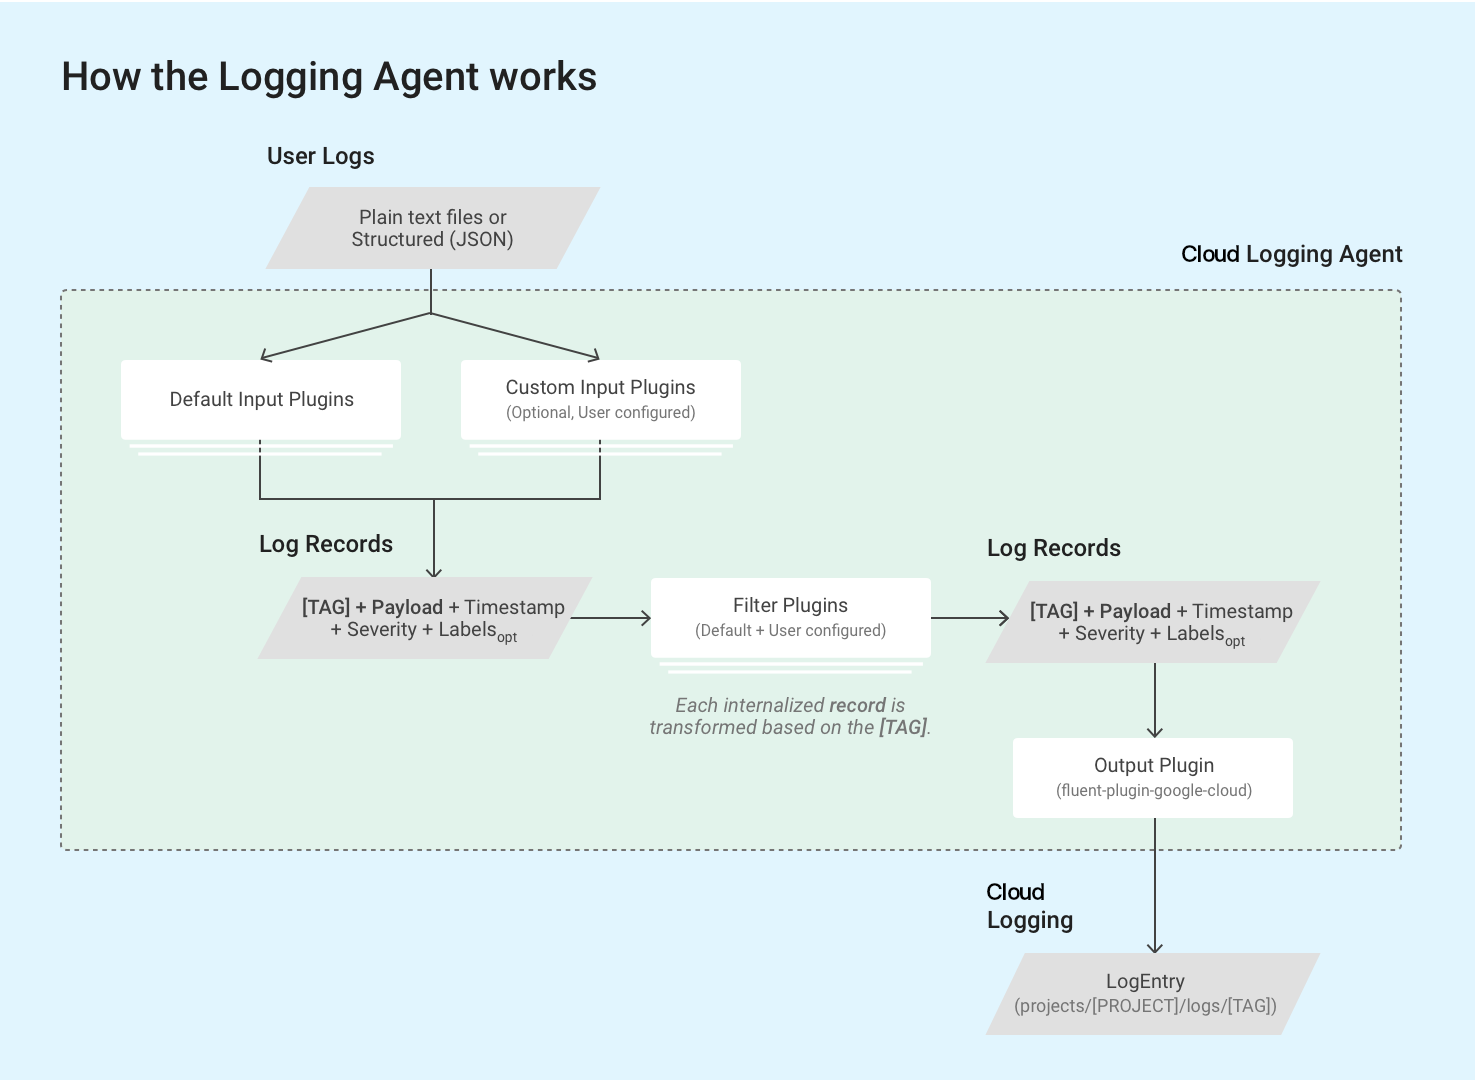 How the Logging Agent Works